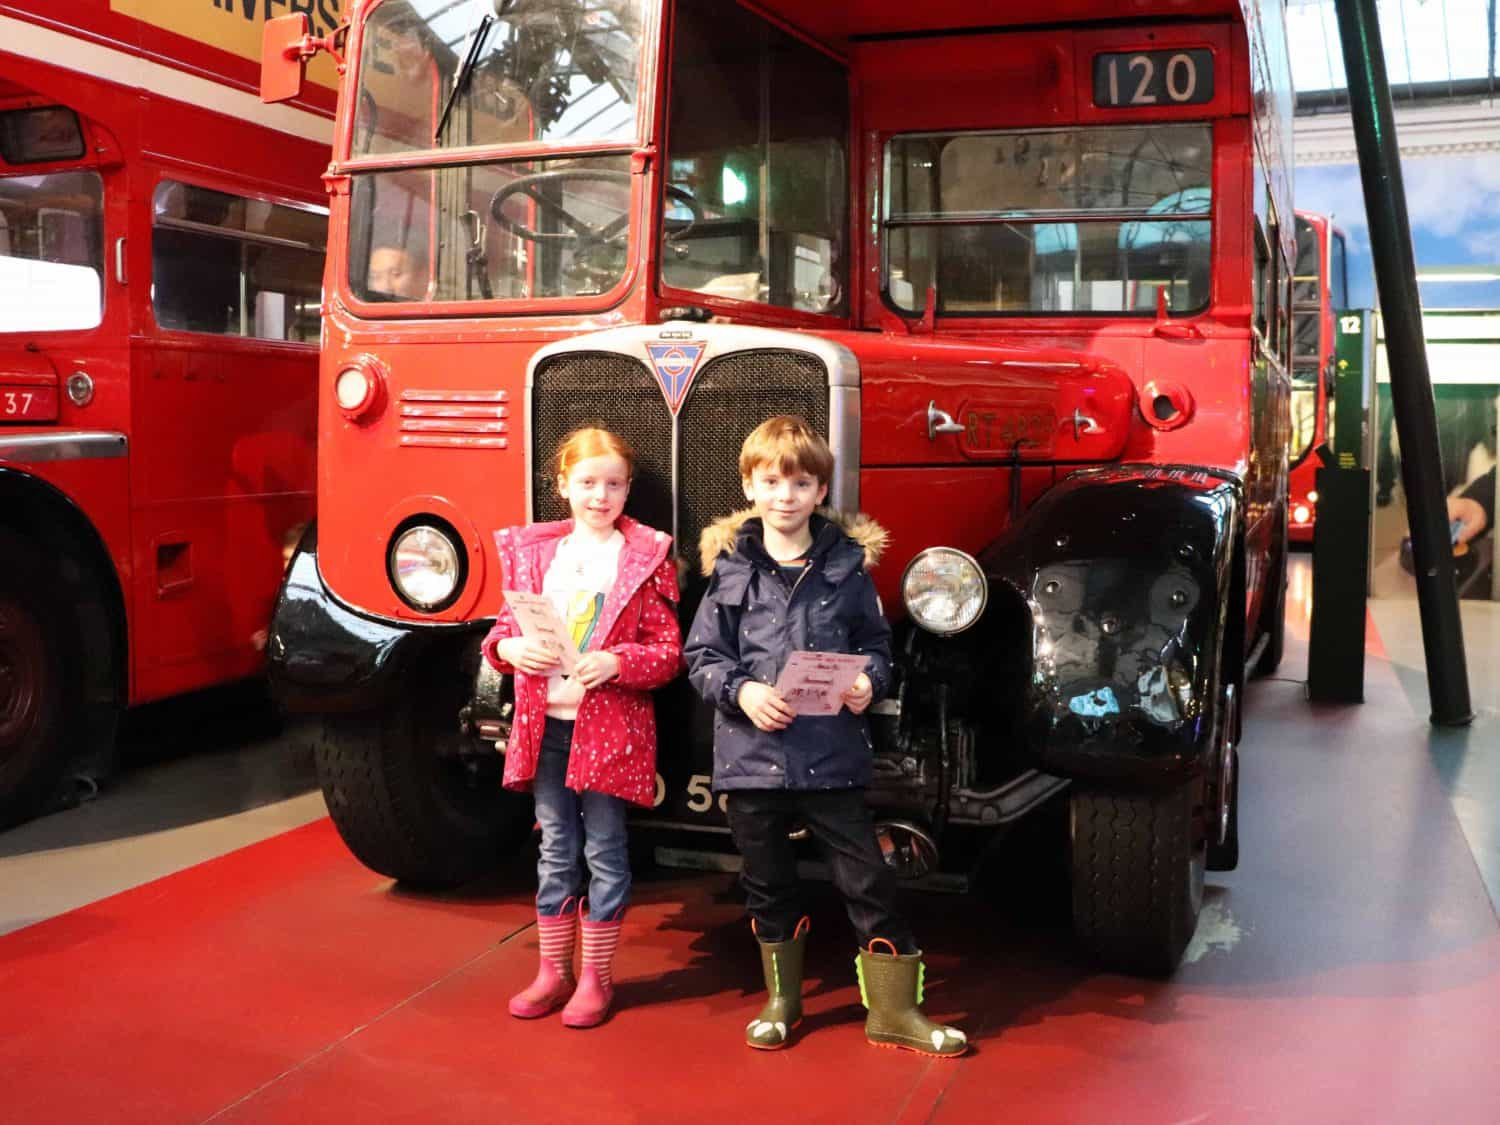 Our first visit to the London Transport Museum